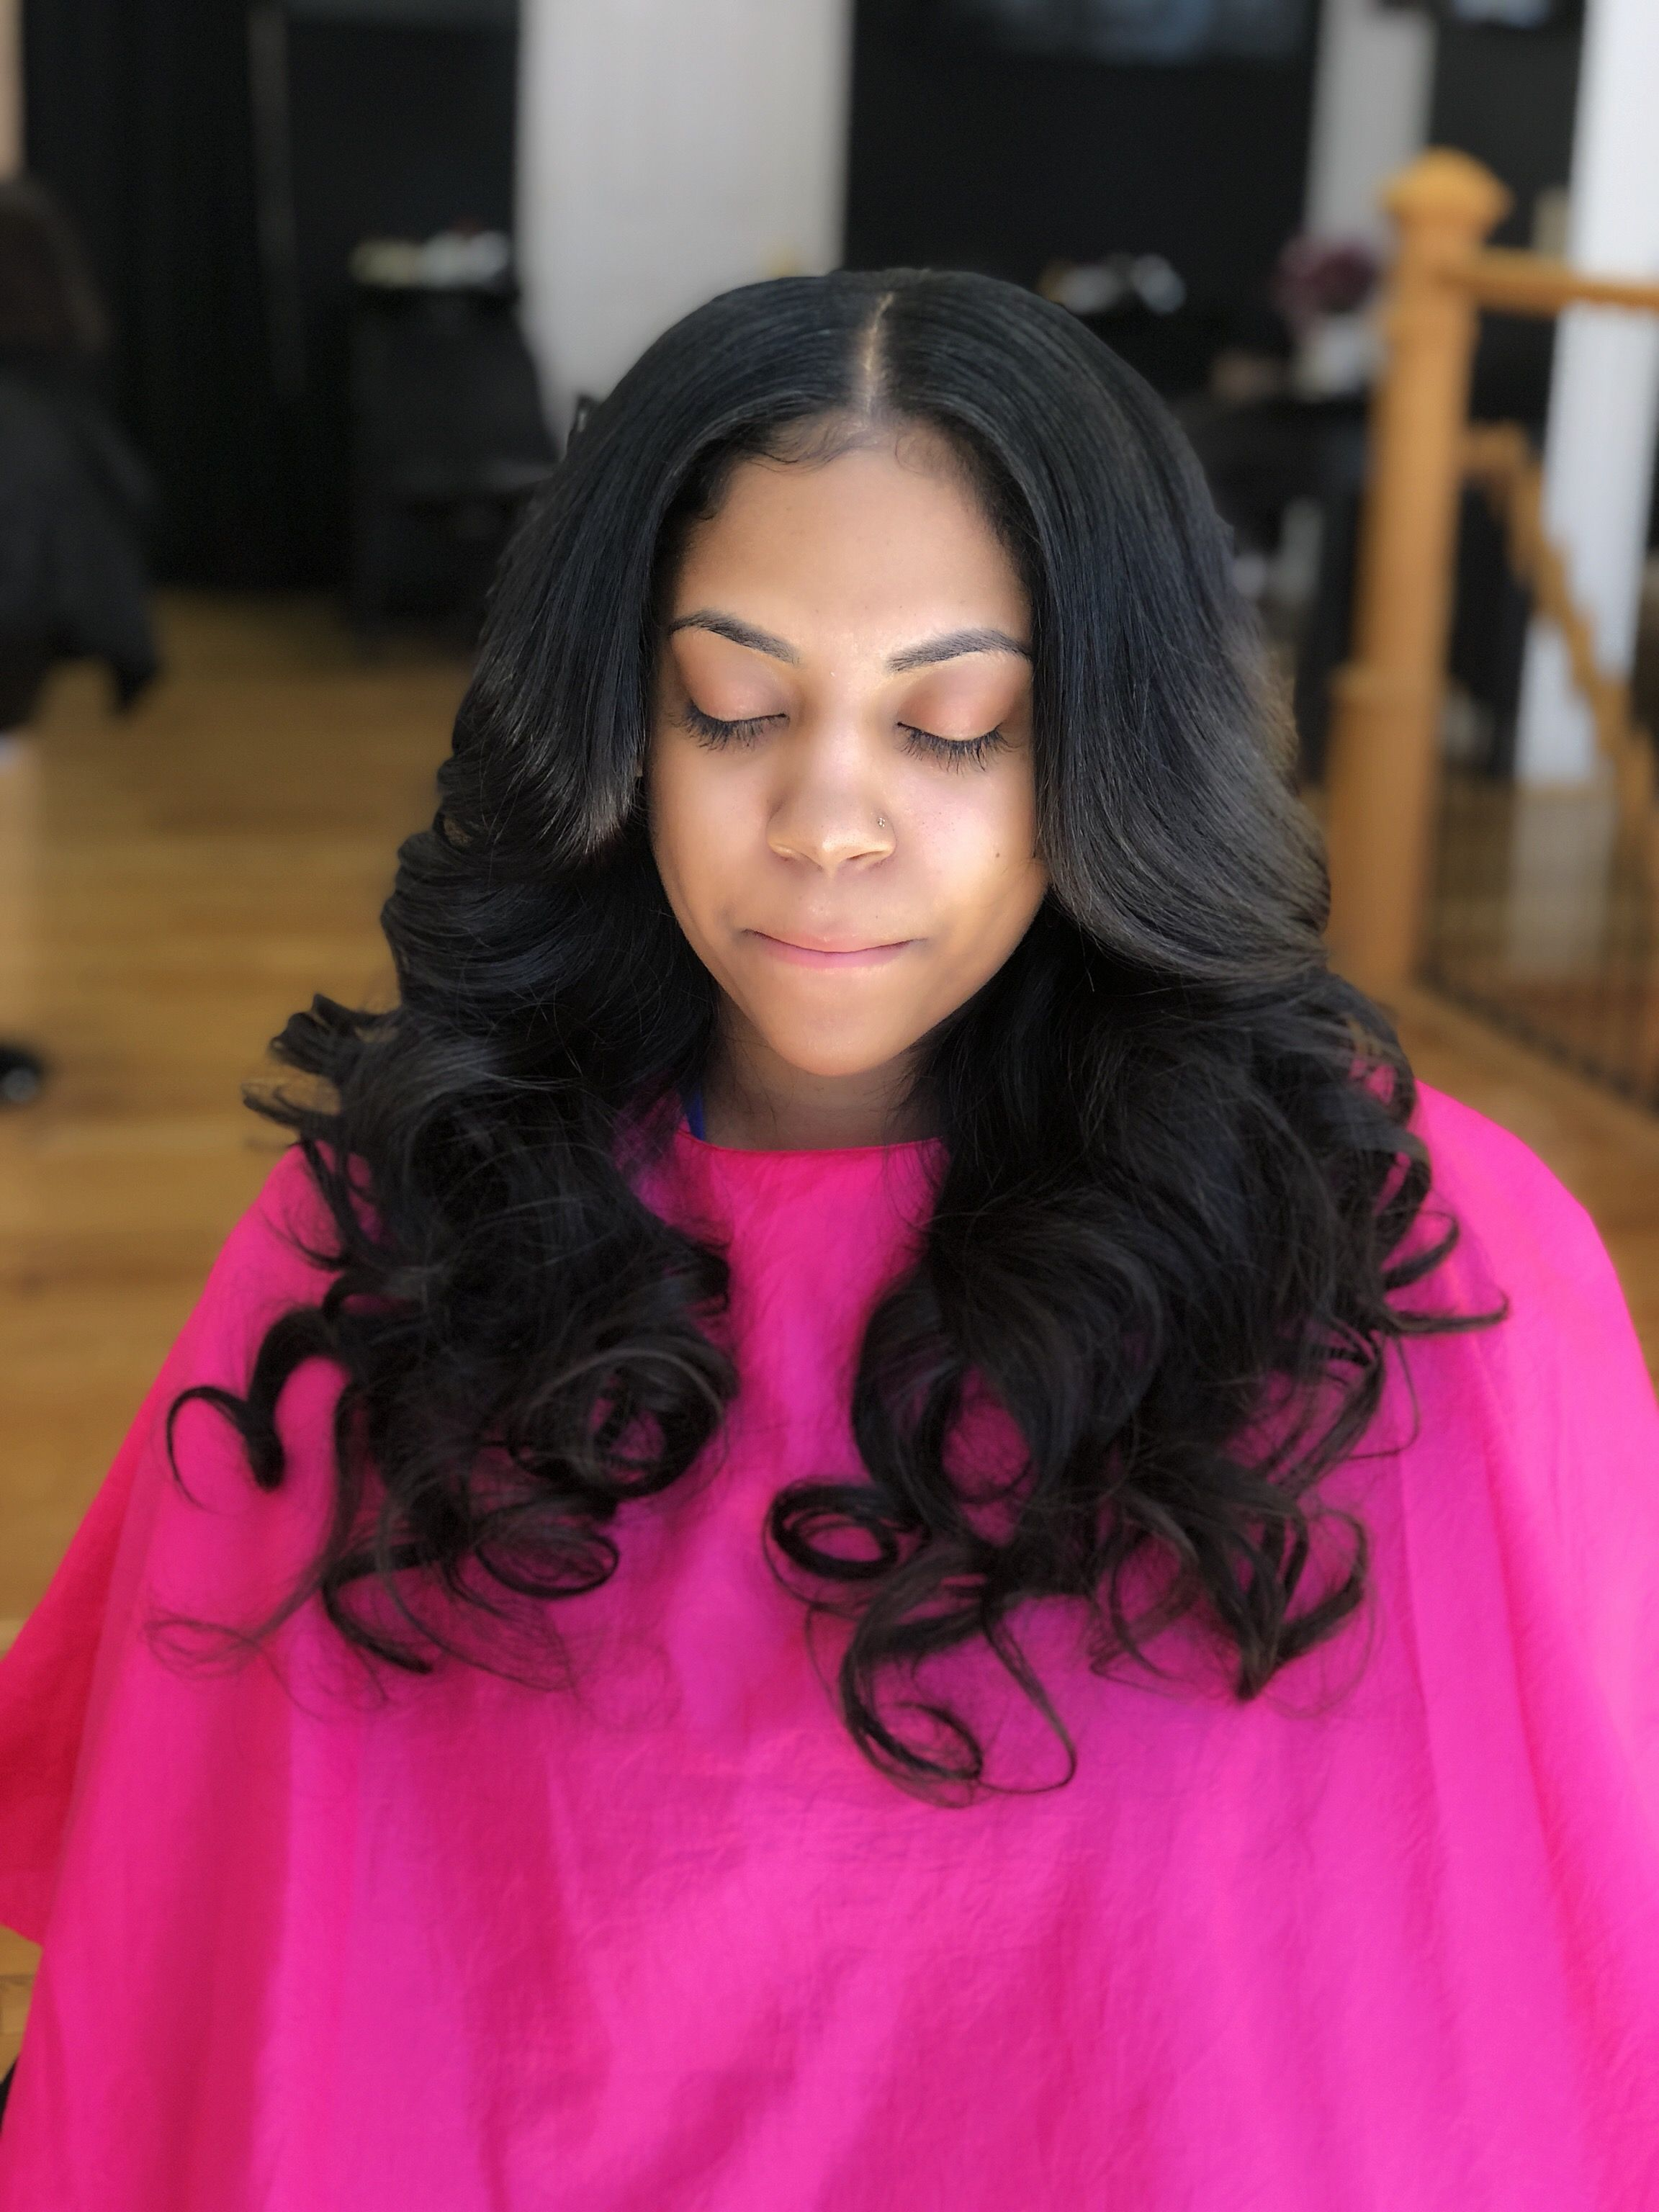 sew-in with middle part @ pinkandblackhairstudio